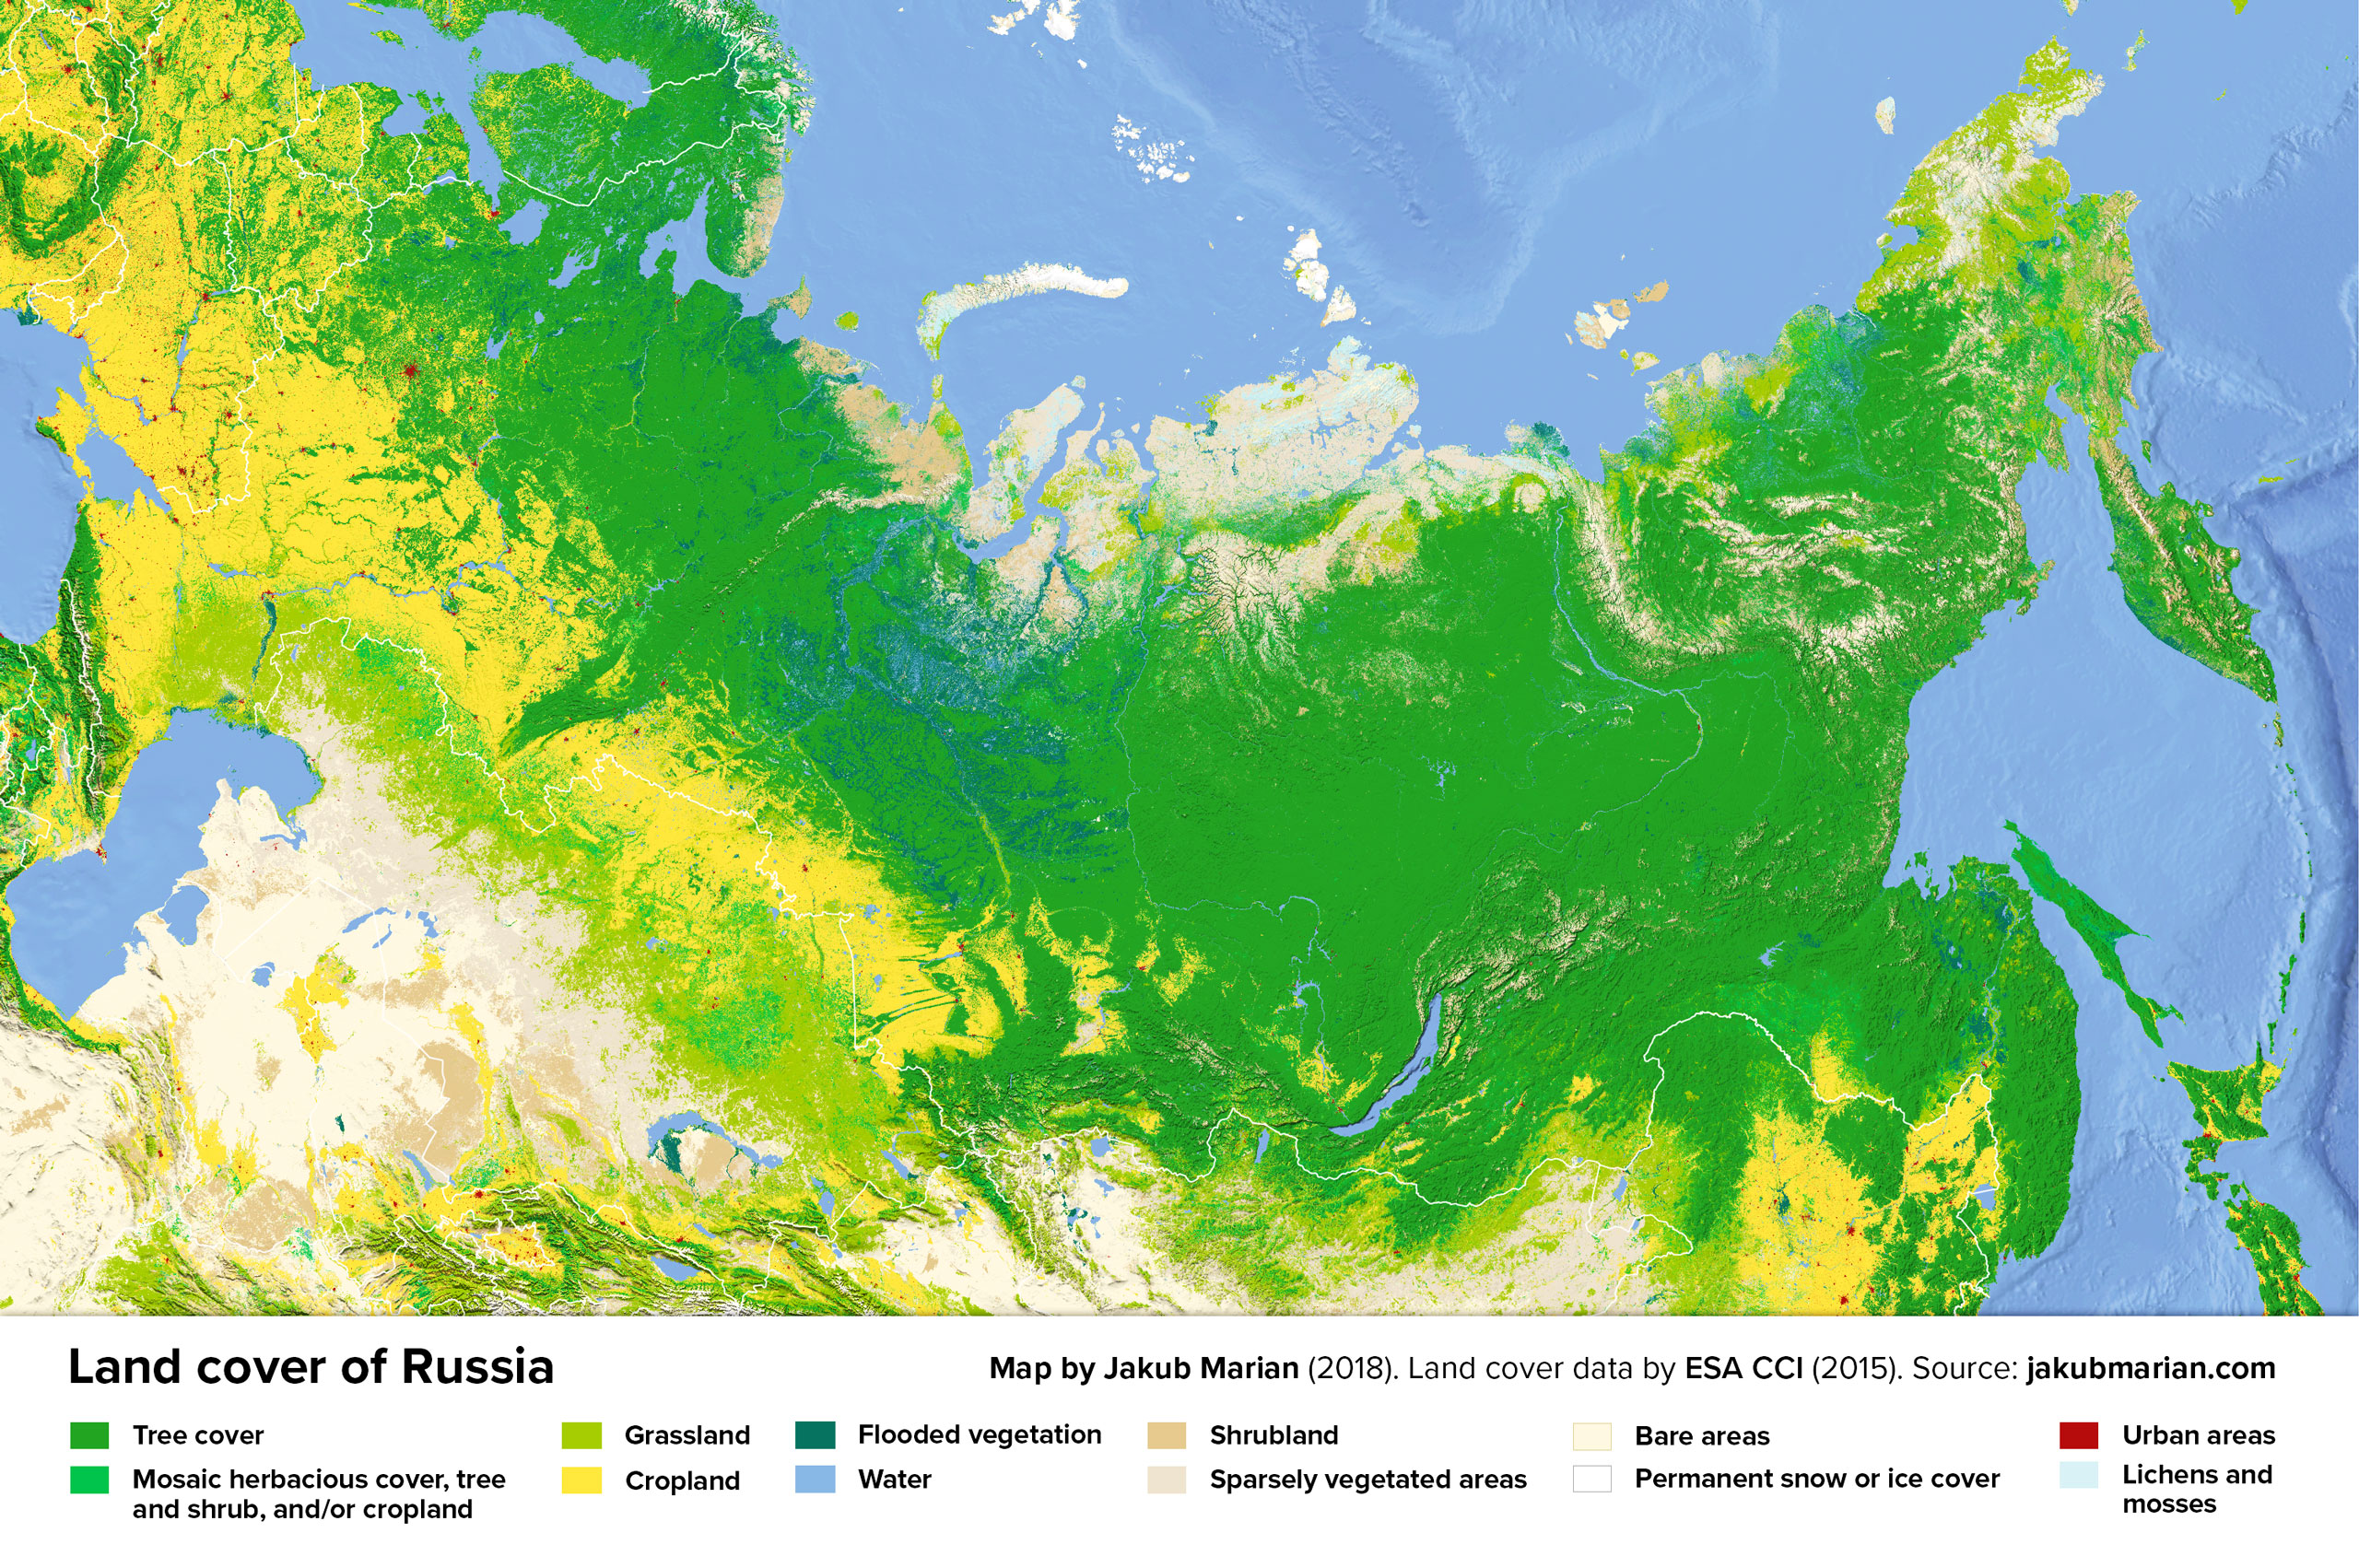 Land cover of Russia